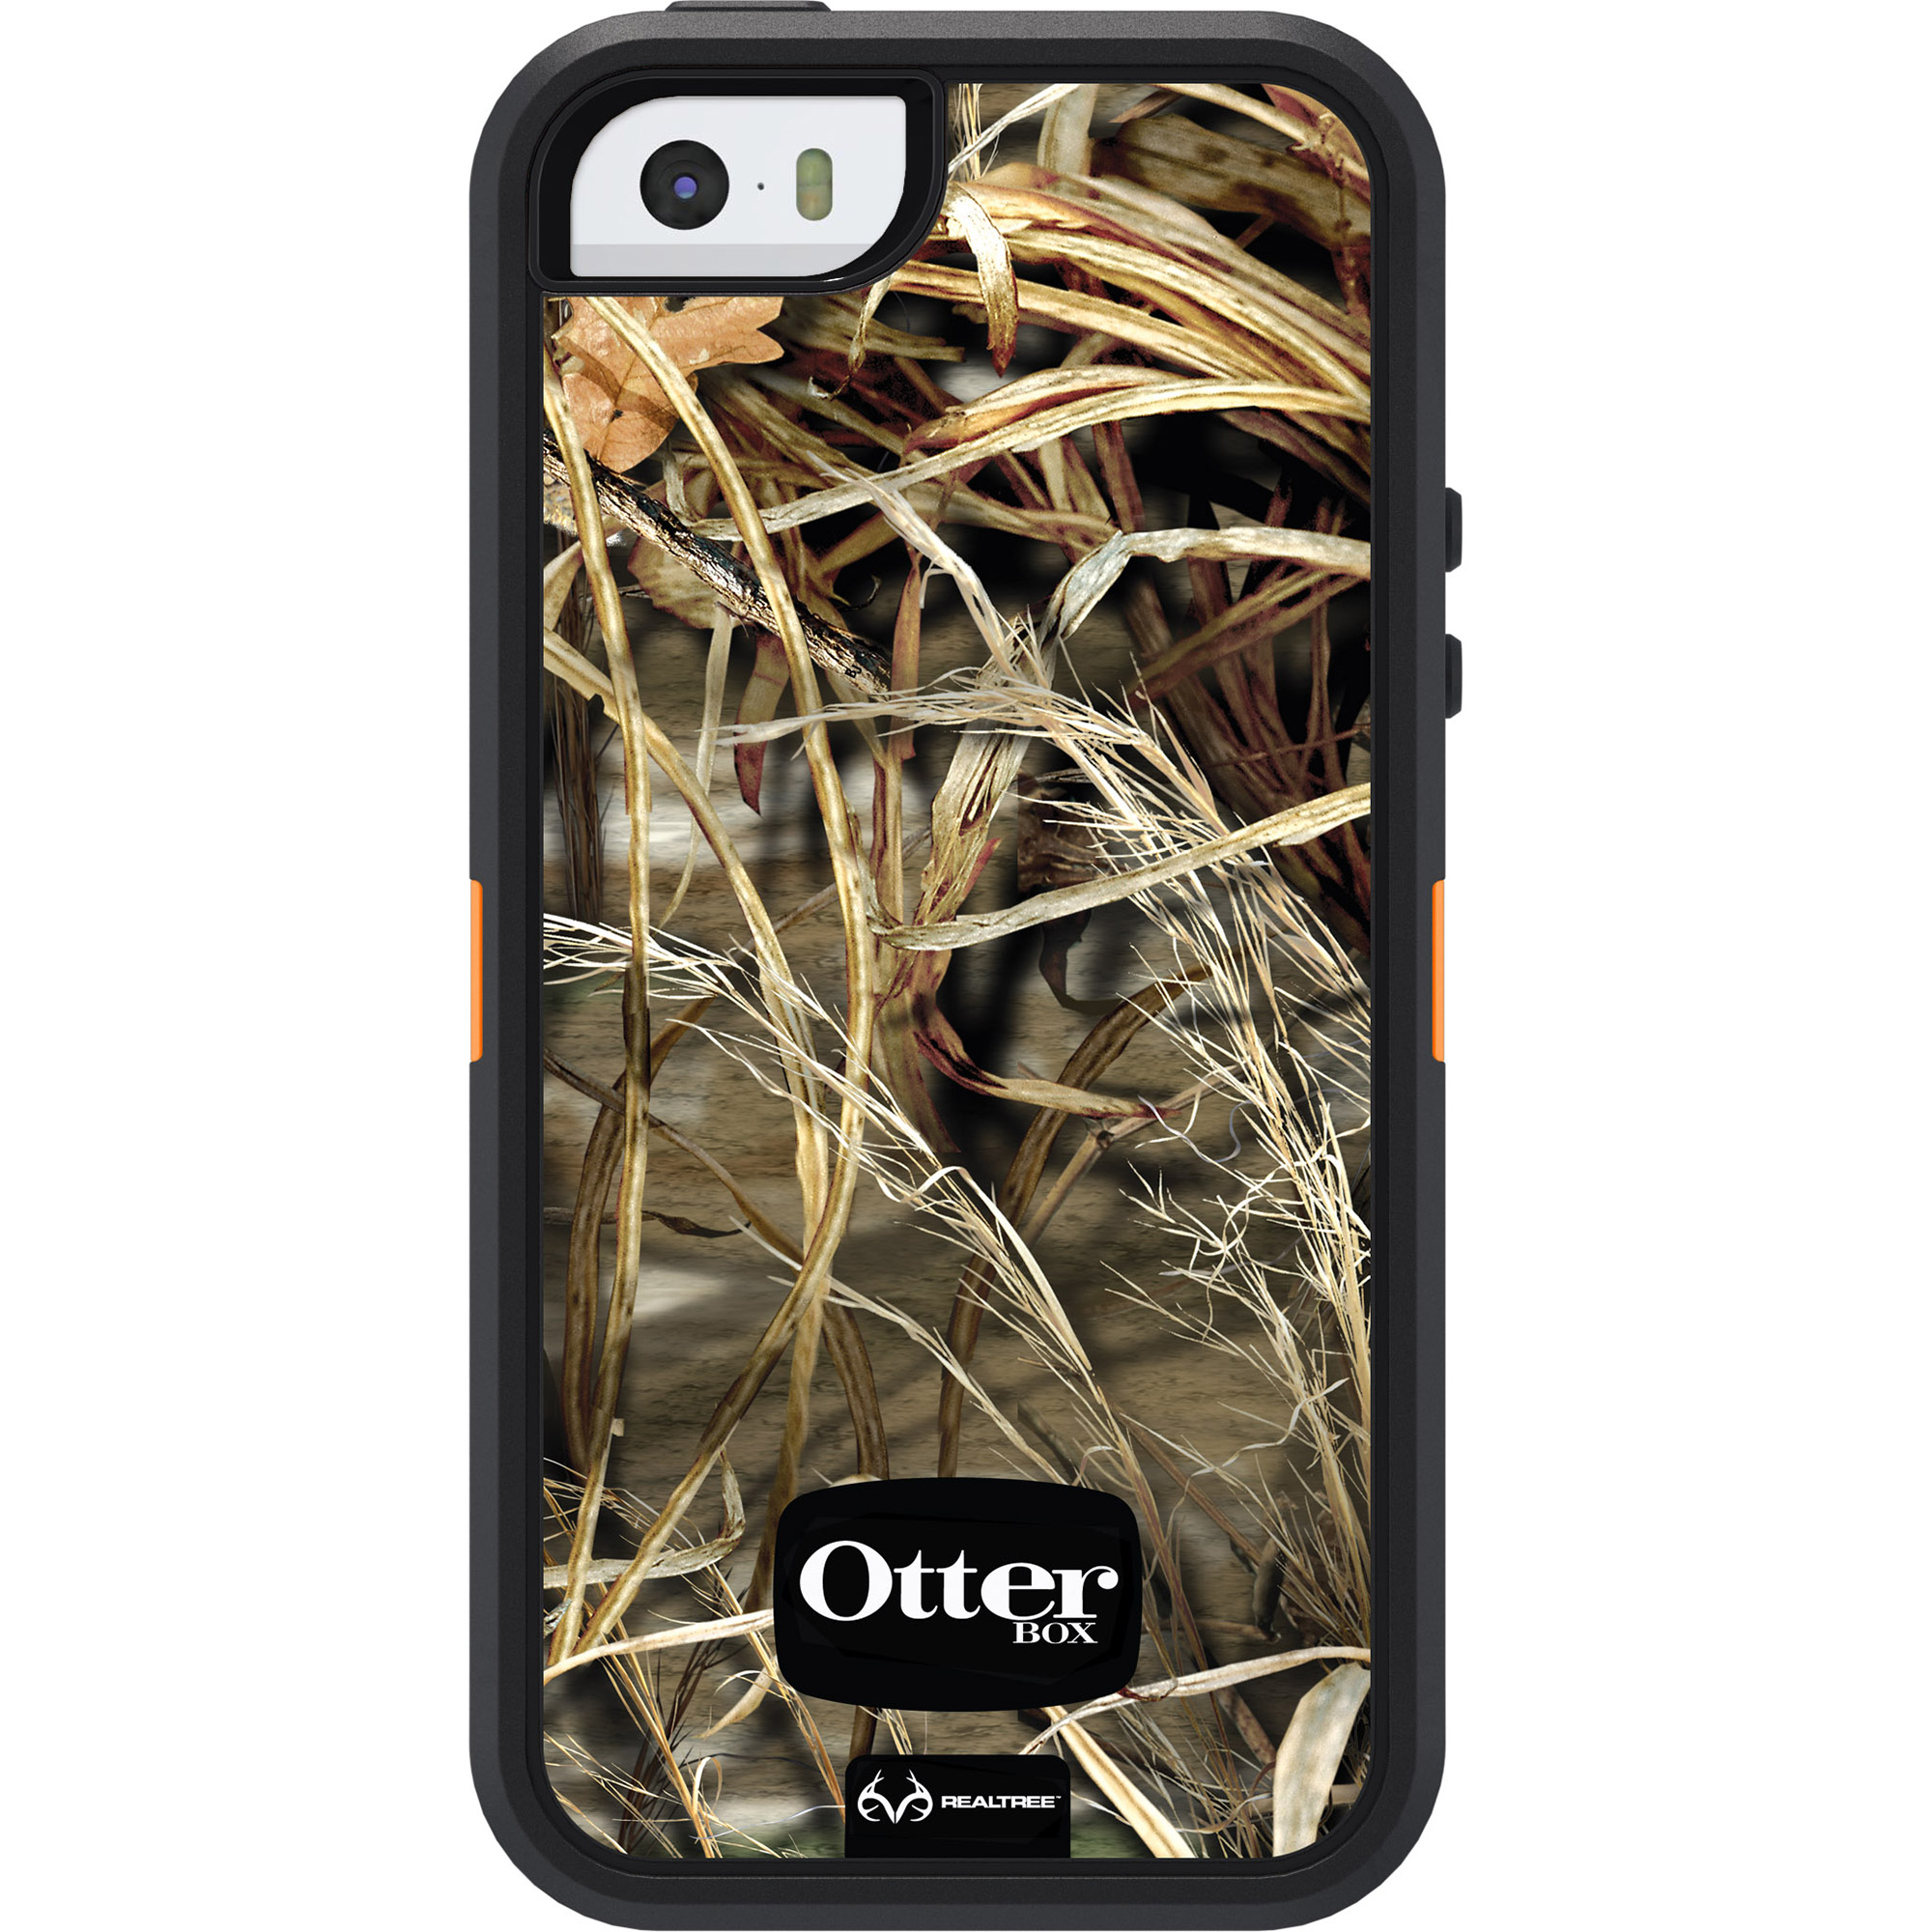 OtterBox Defender Series with Realtree camo for Apple iPhone 5/5s